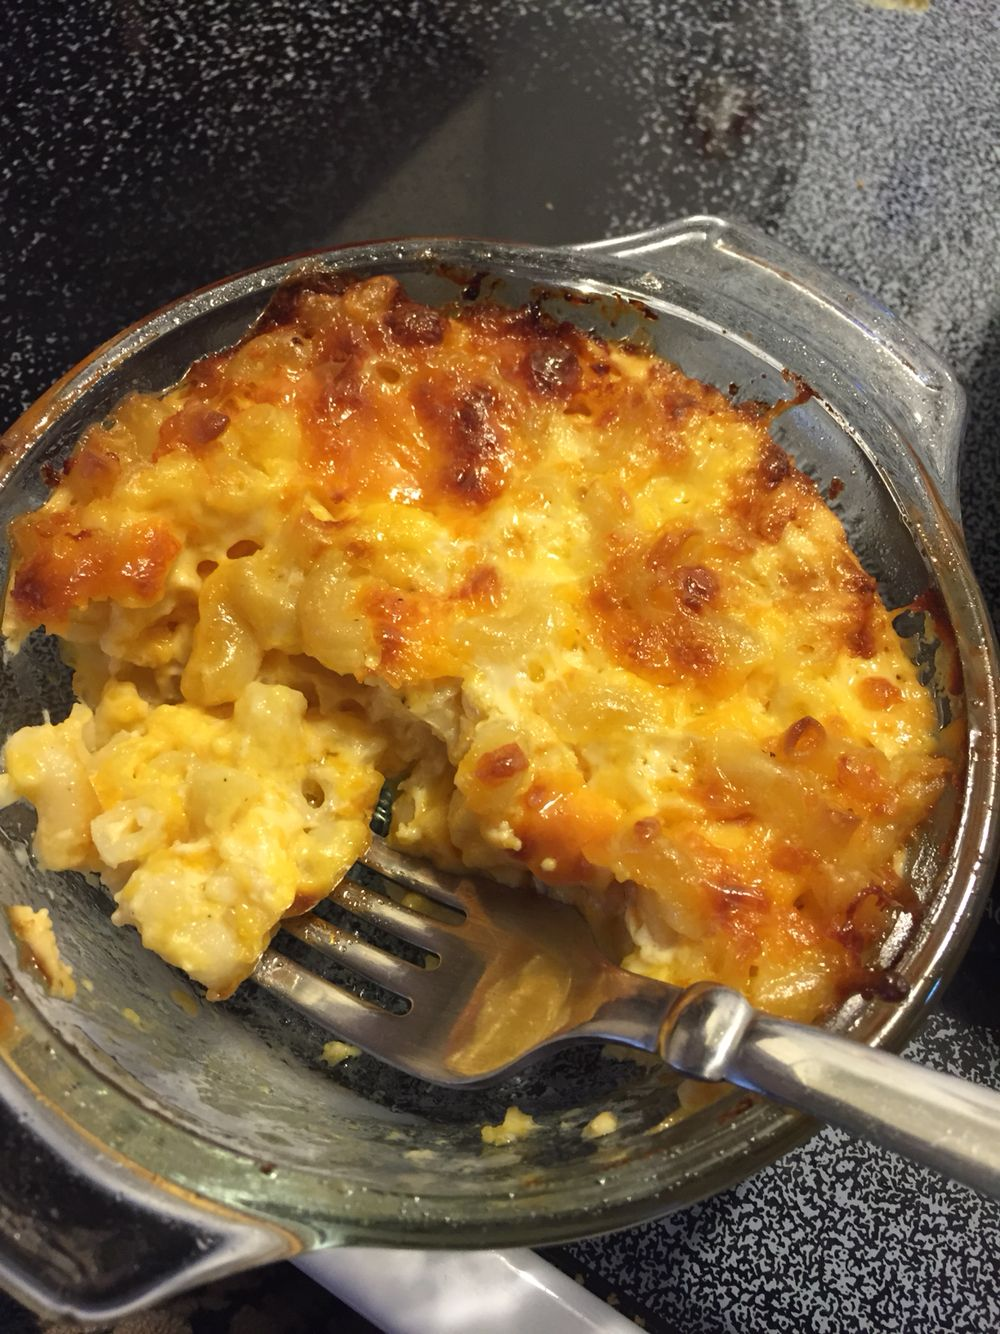 The best Macaroni and Cheese recipe EVER! 1 lb elbow